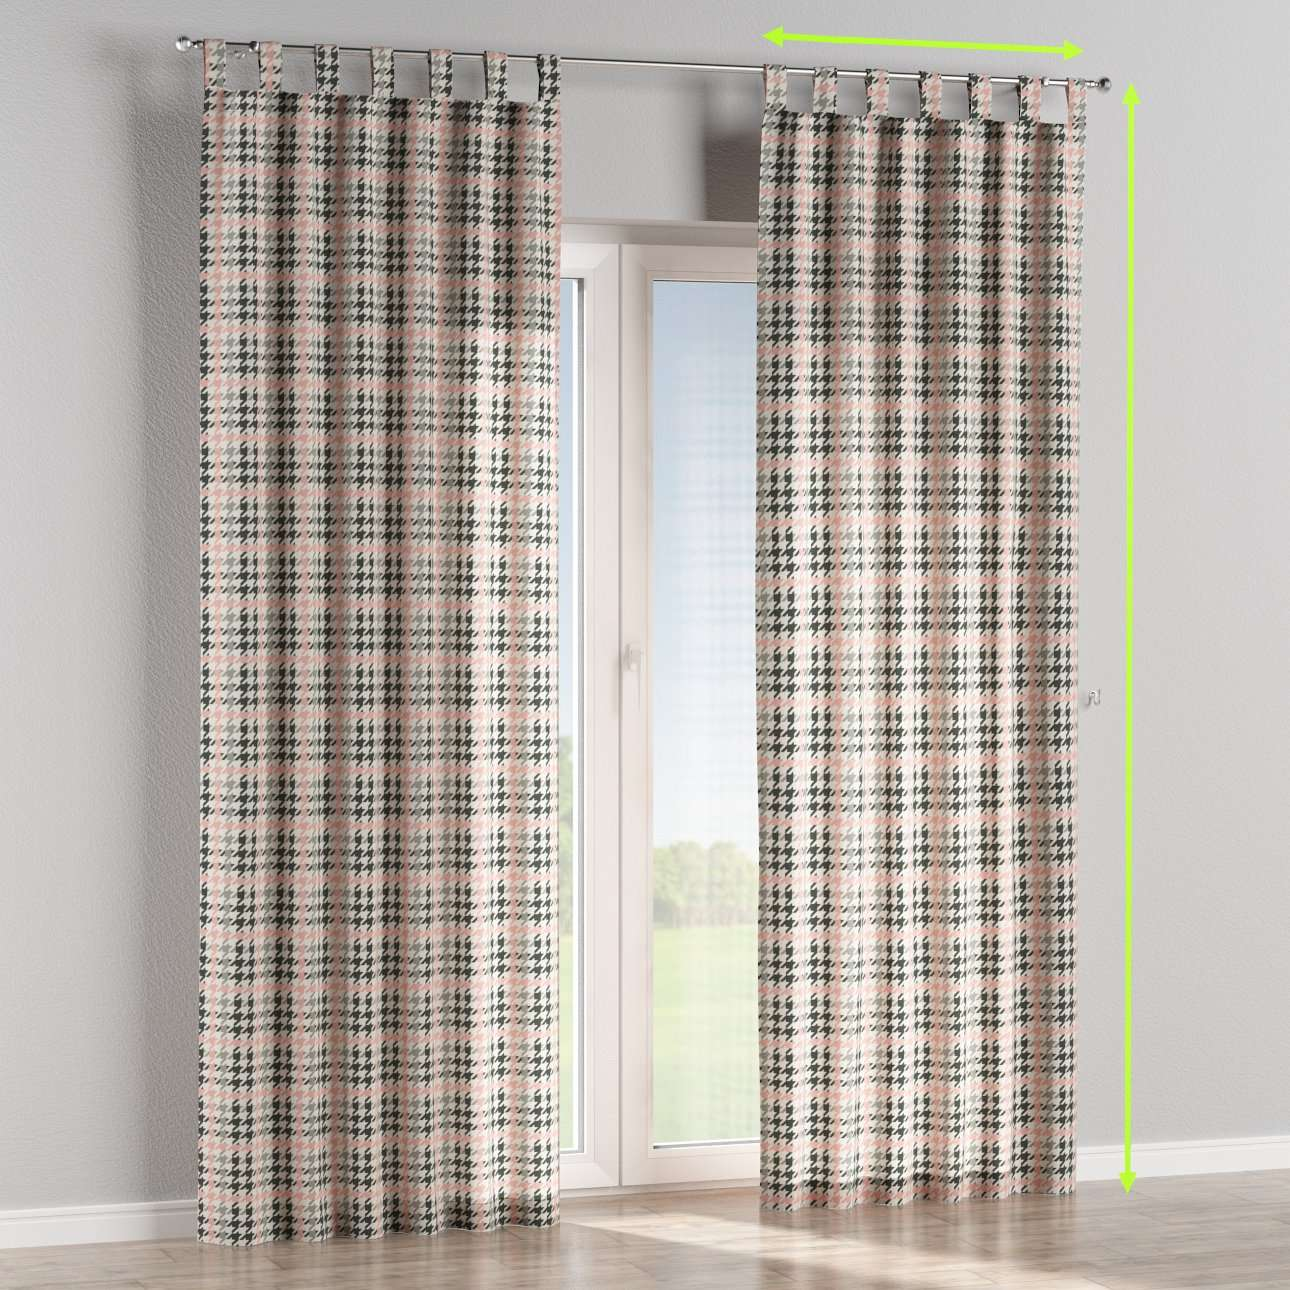 Tab top lined curtains in collection Brooklyn, fabric: 137-75